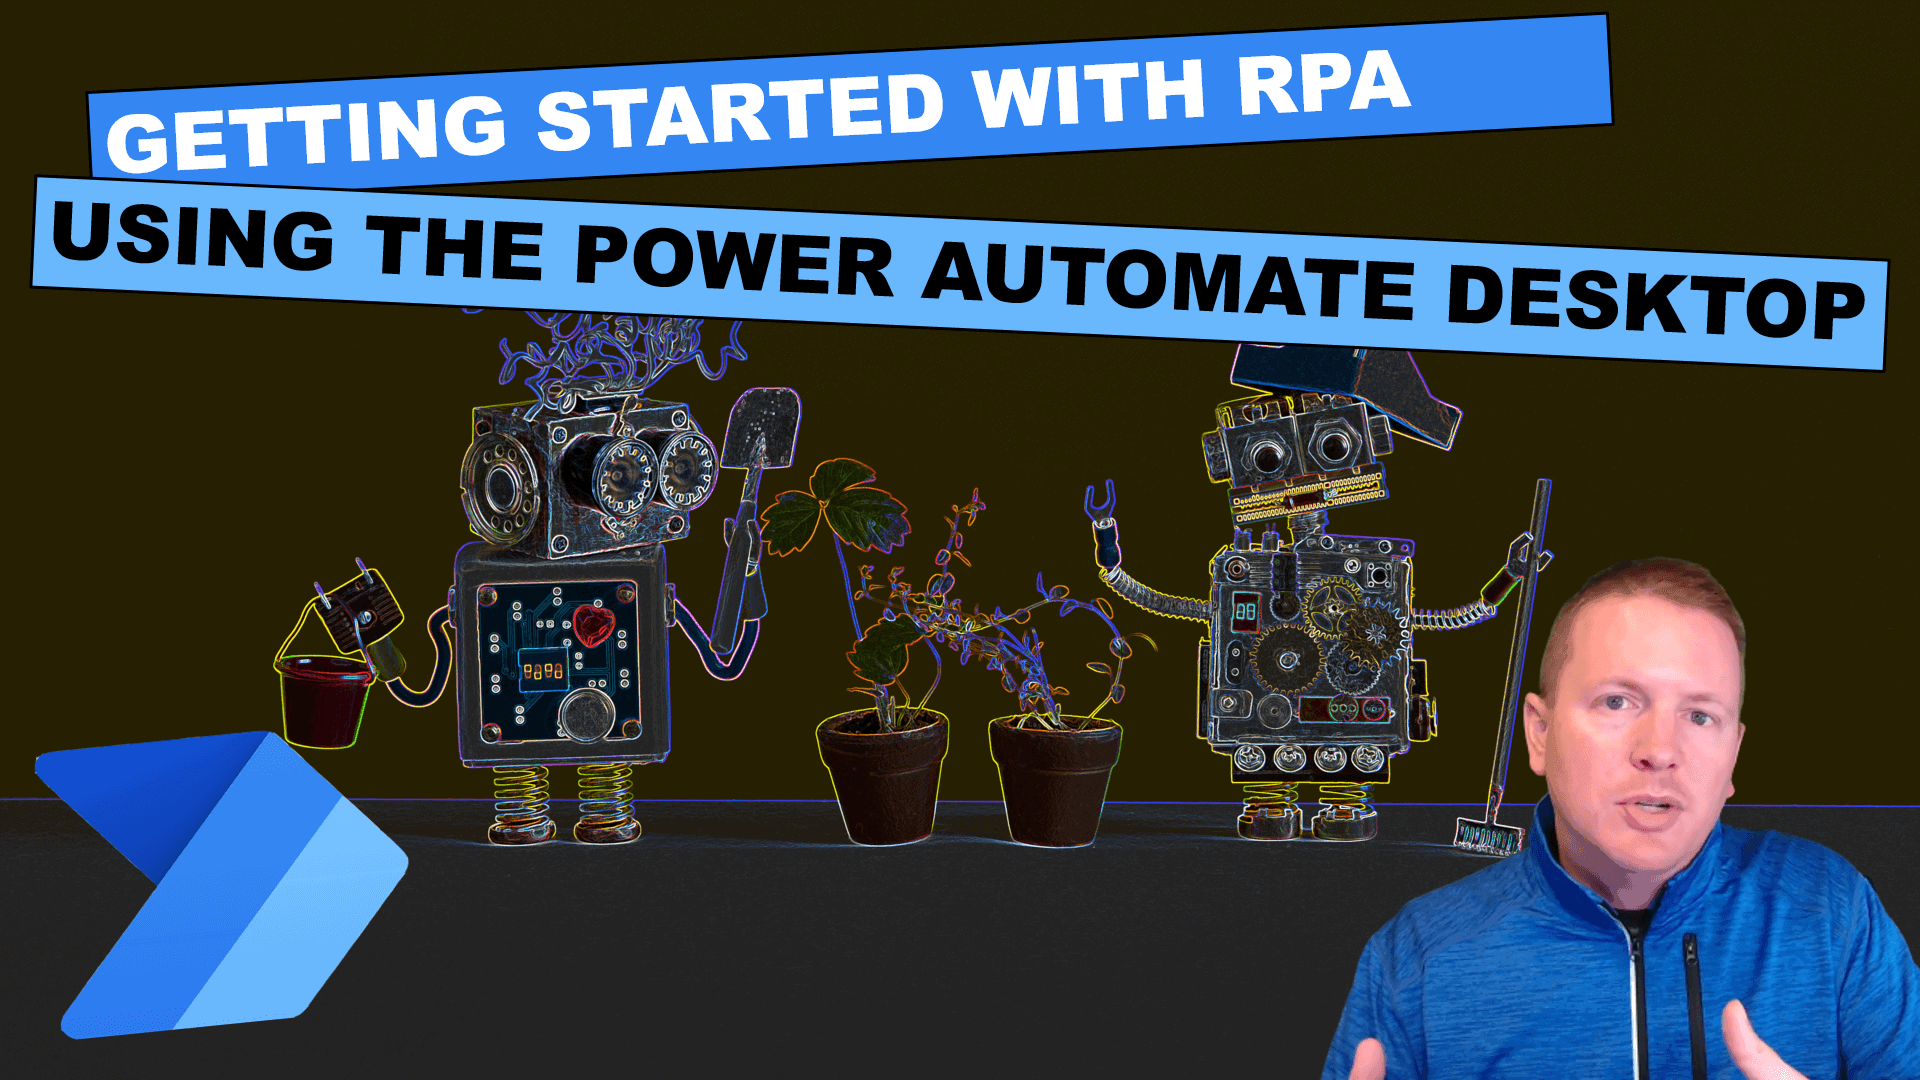 Getting Started with RPA using the power automate desktop cover image